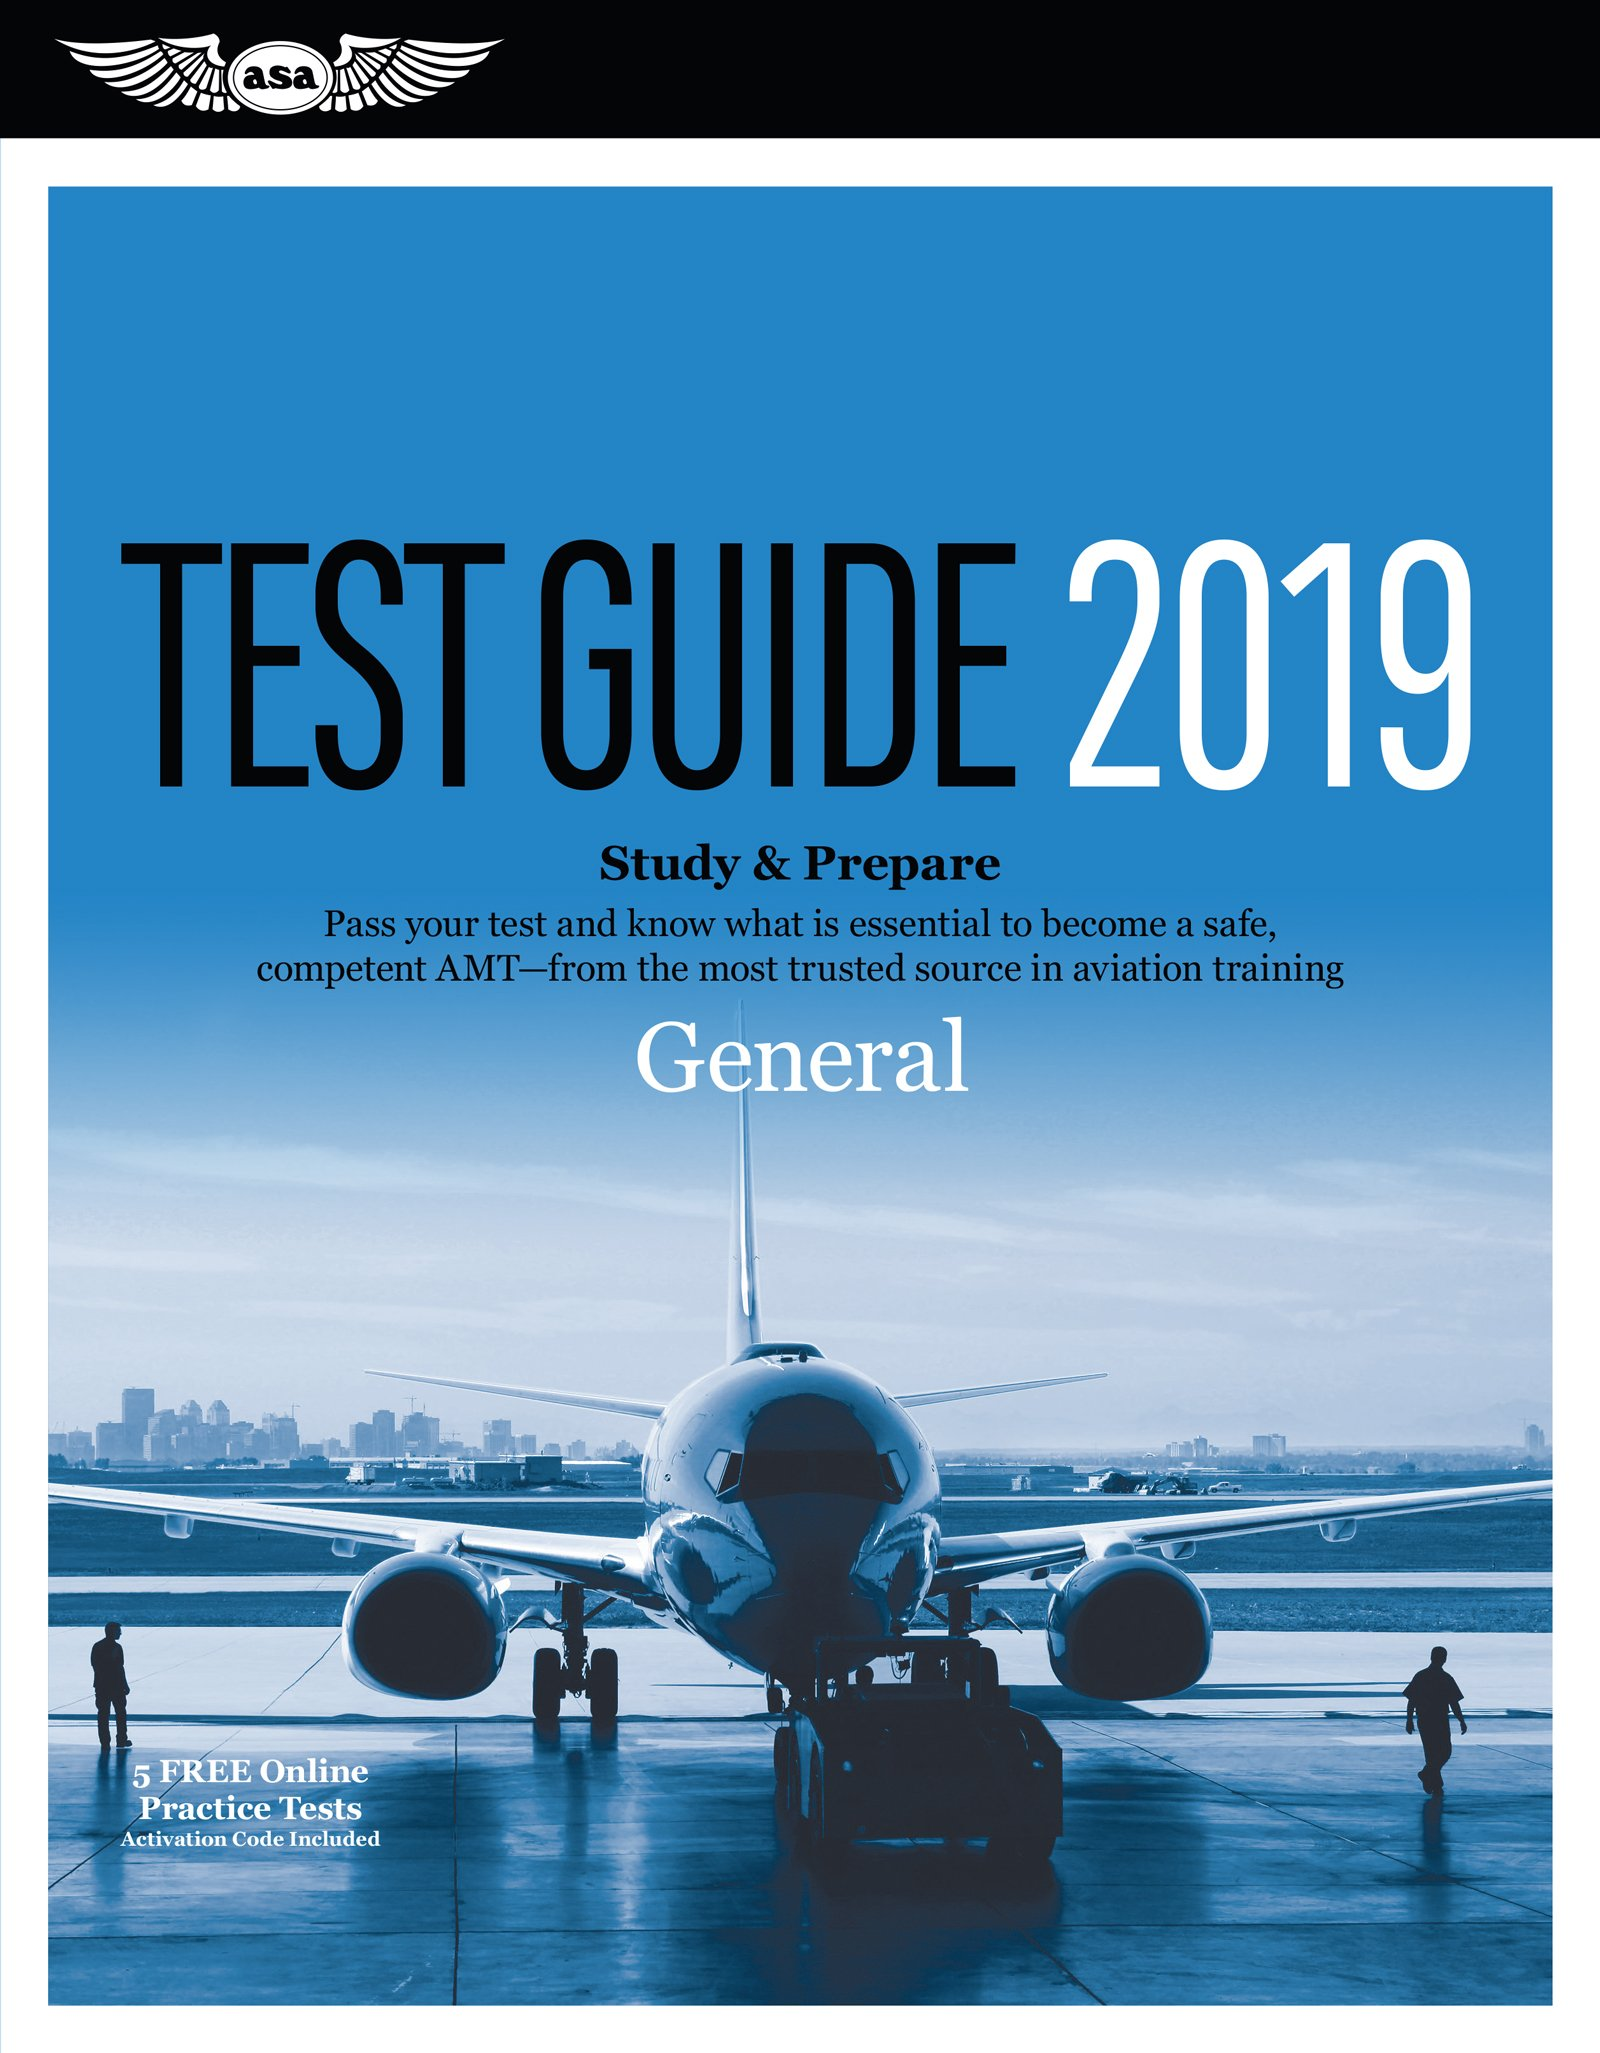 General Test Guide 2019: Pass your test and know what is essential to become a safe, competent AMT from the most trusted source in aviation training (Fast-Track Test Guides)